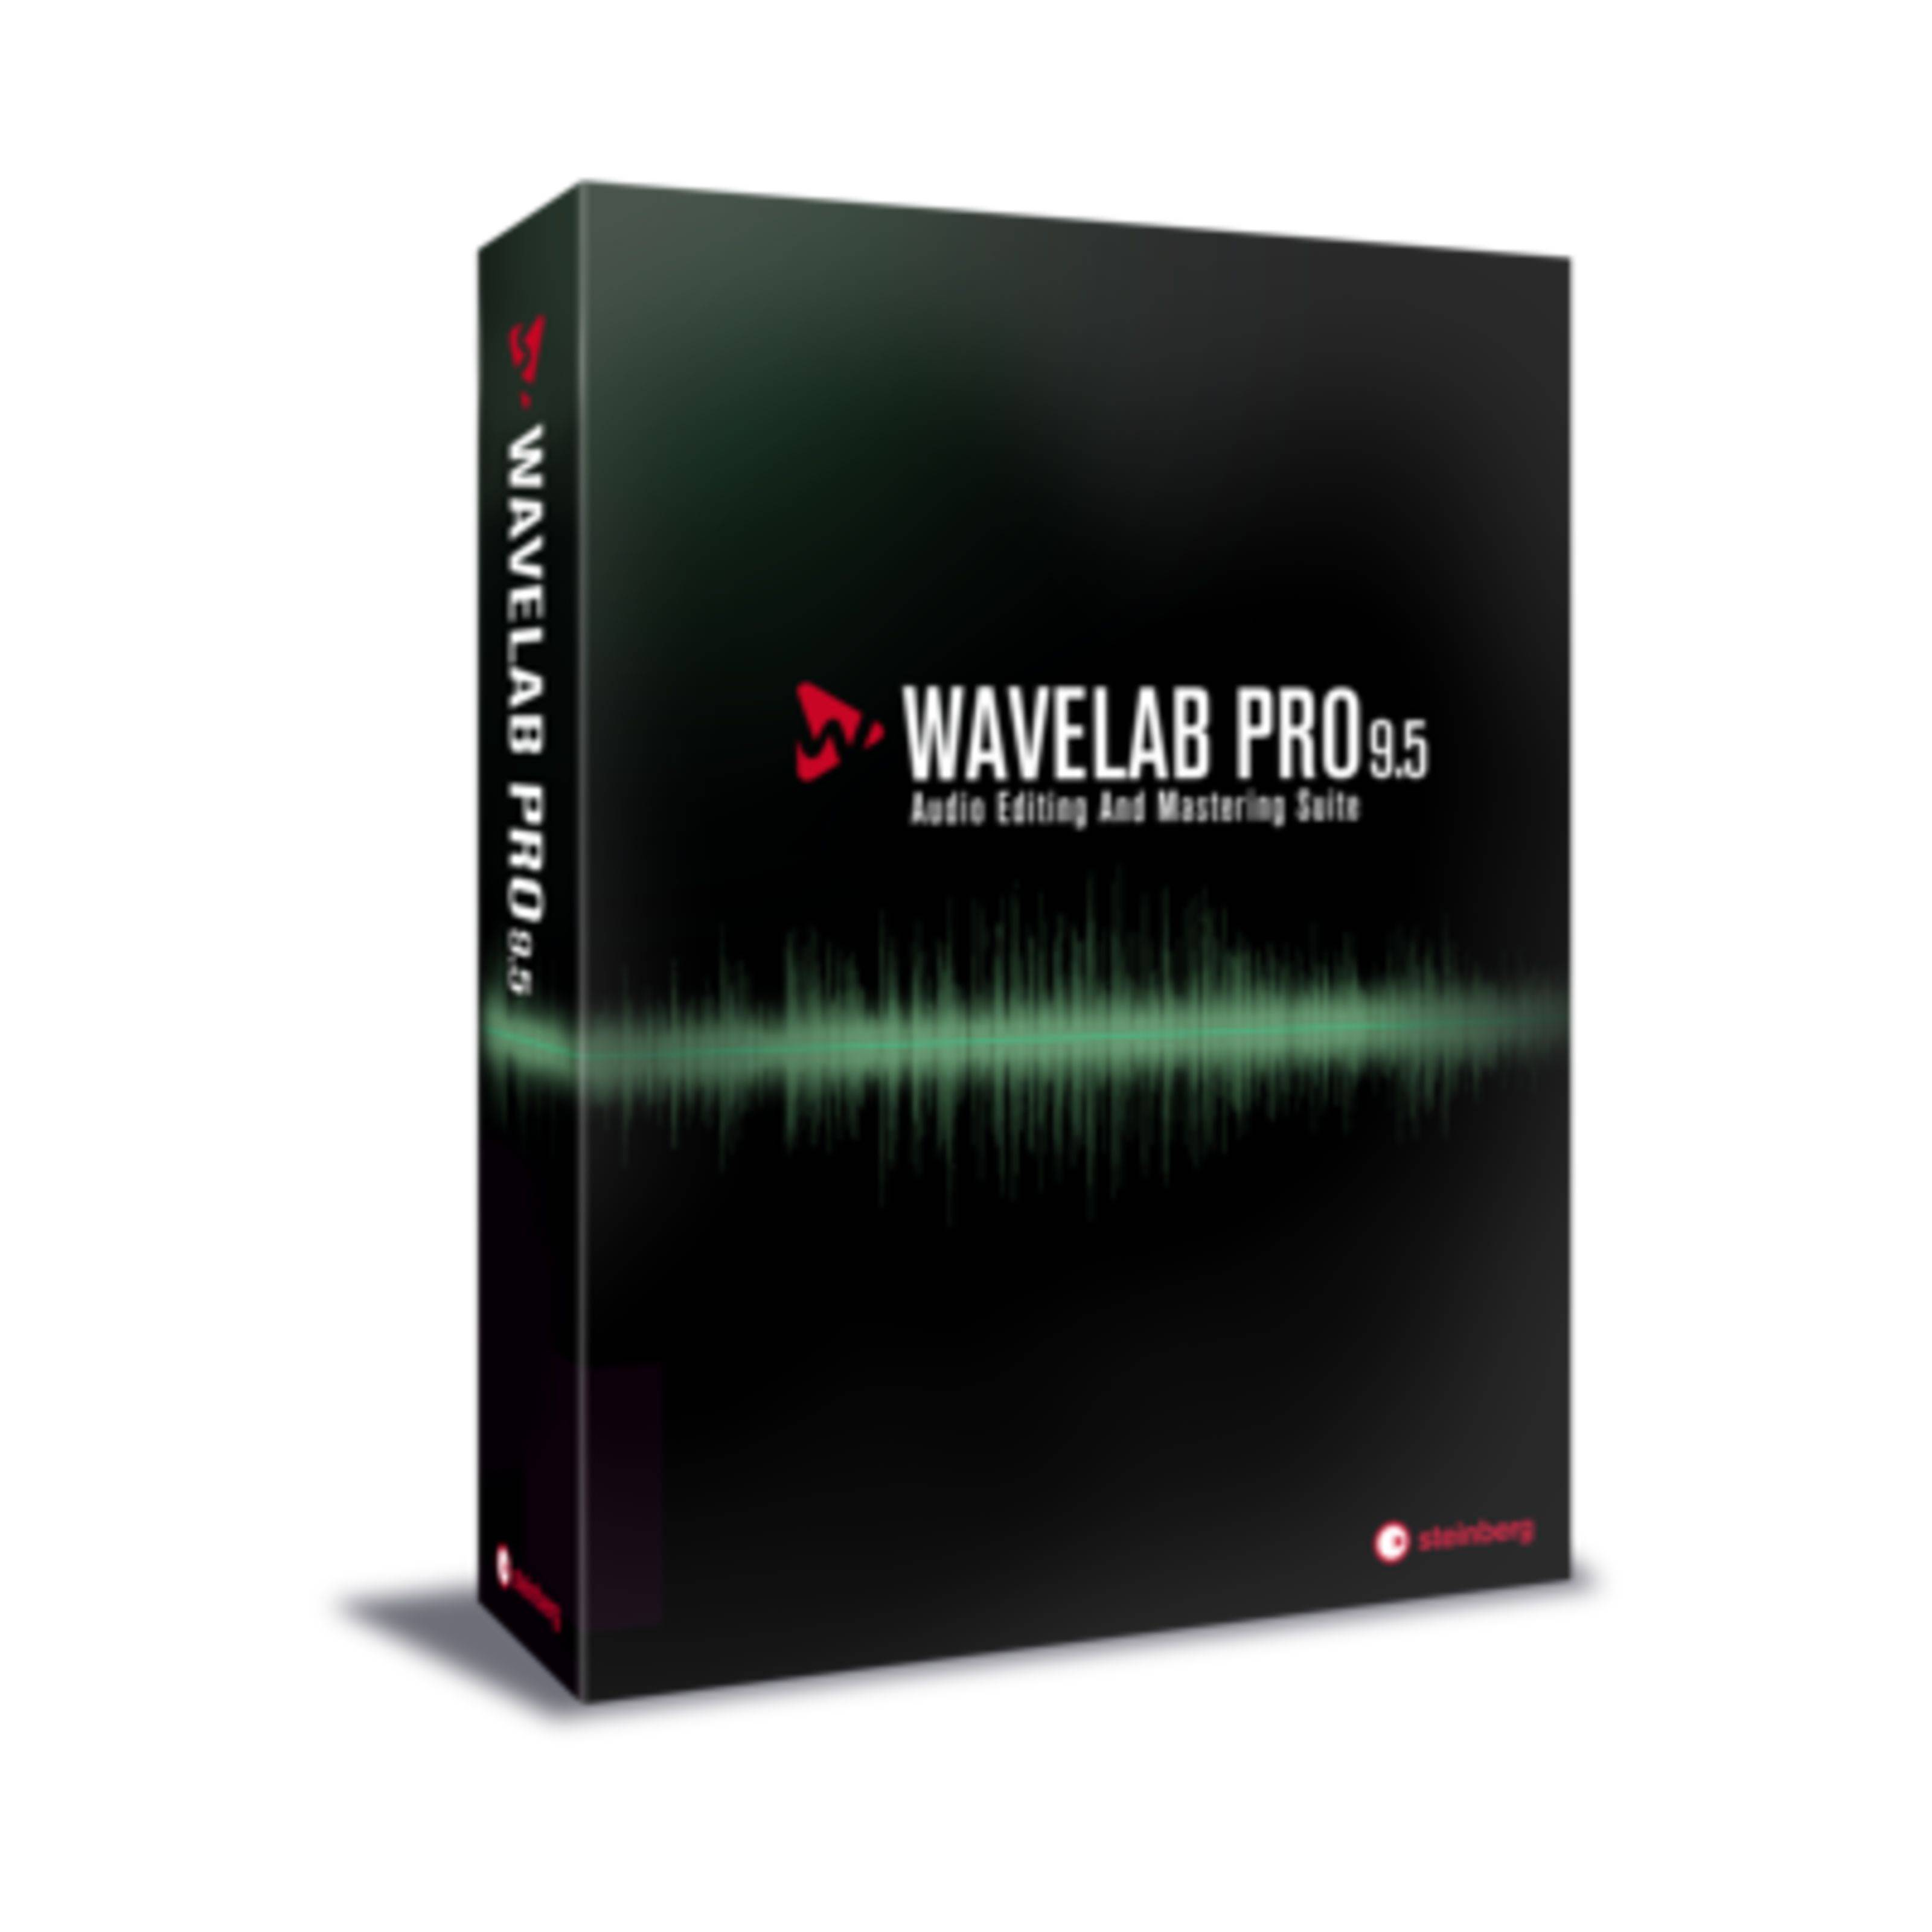 Steinberg WaveLab Pro 9.5 EDU Mastering Software